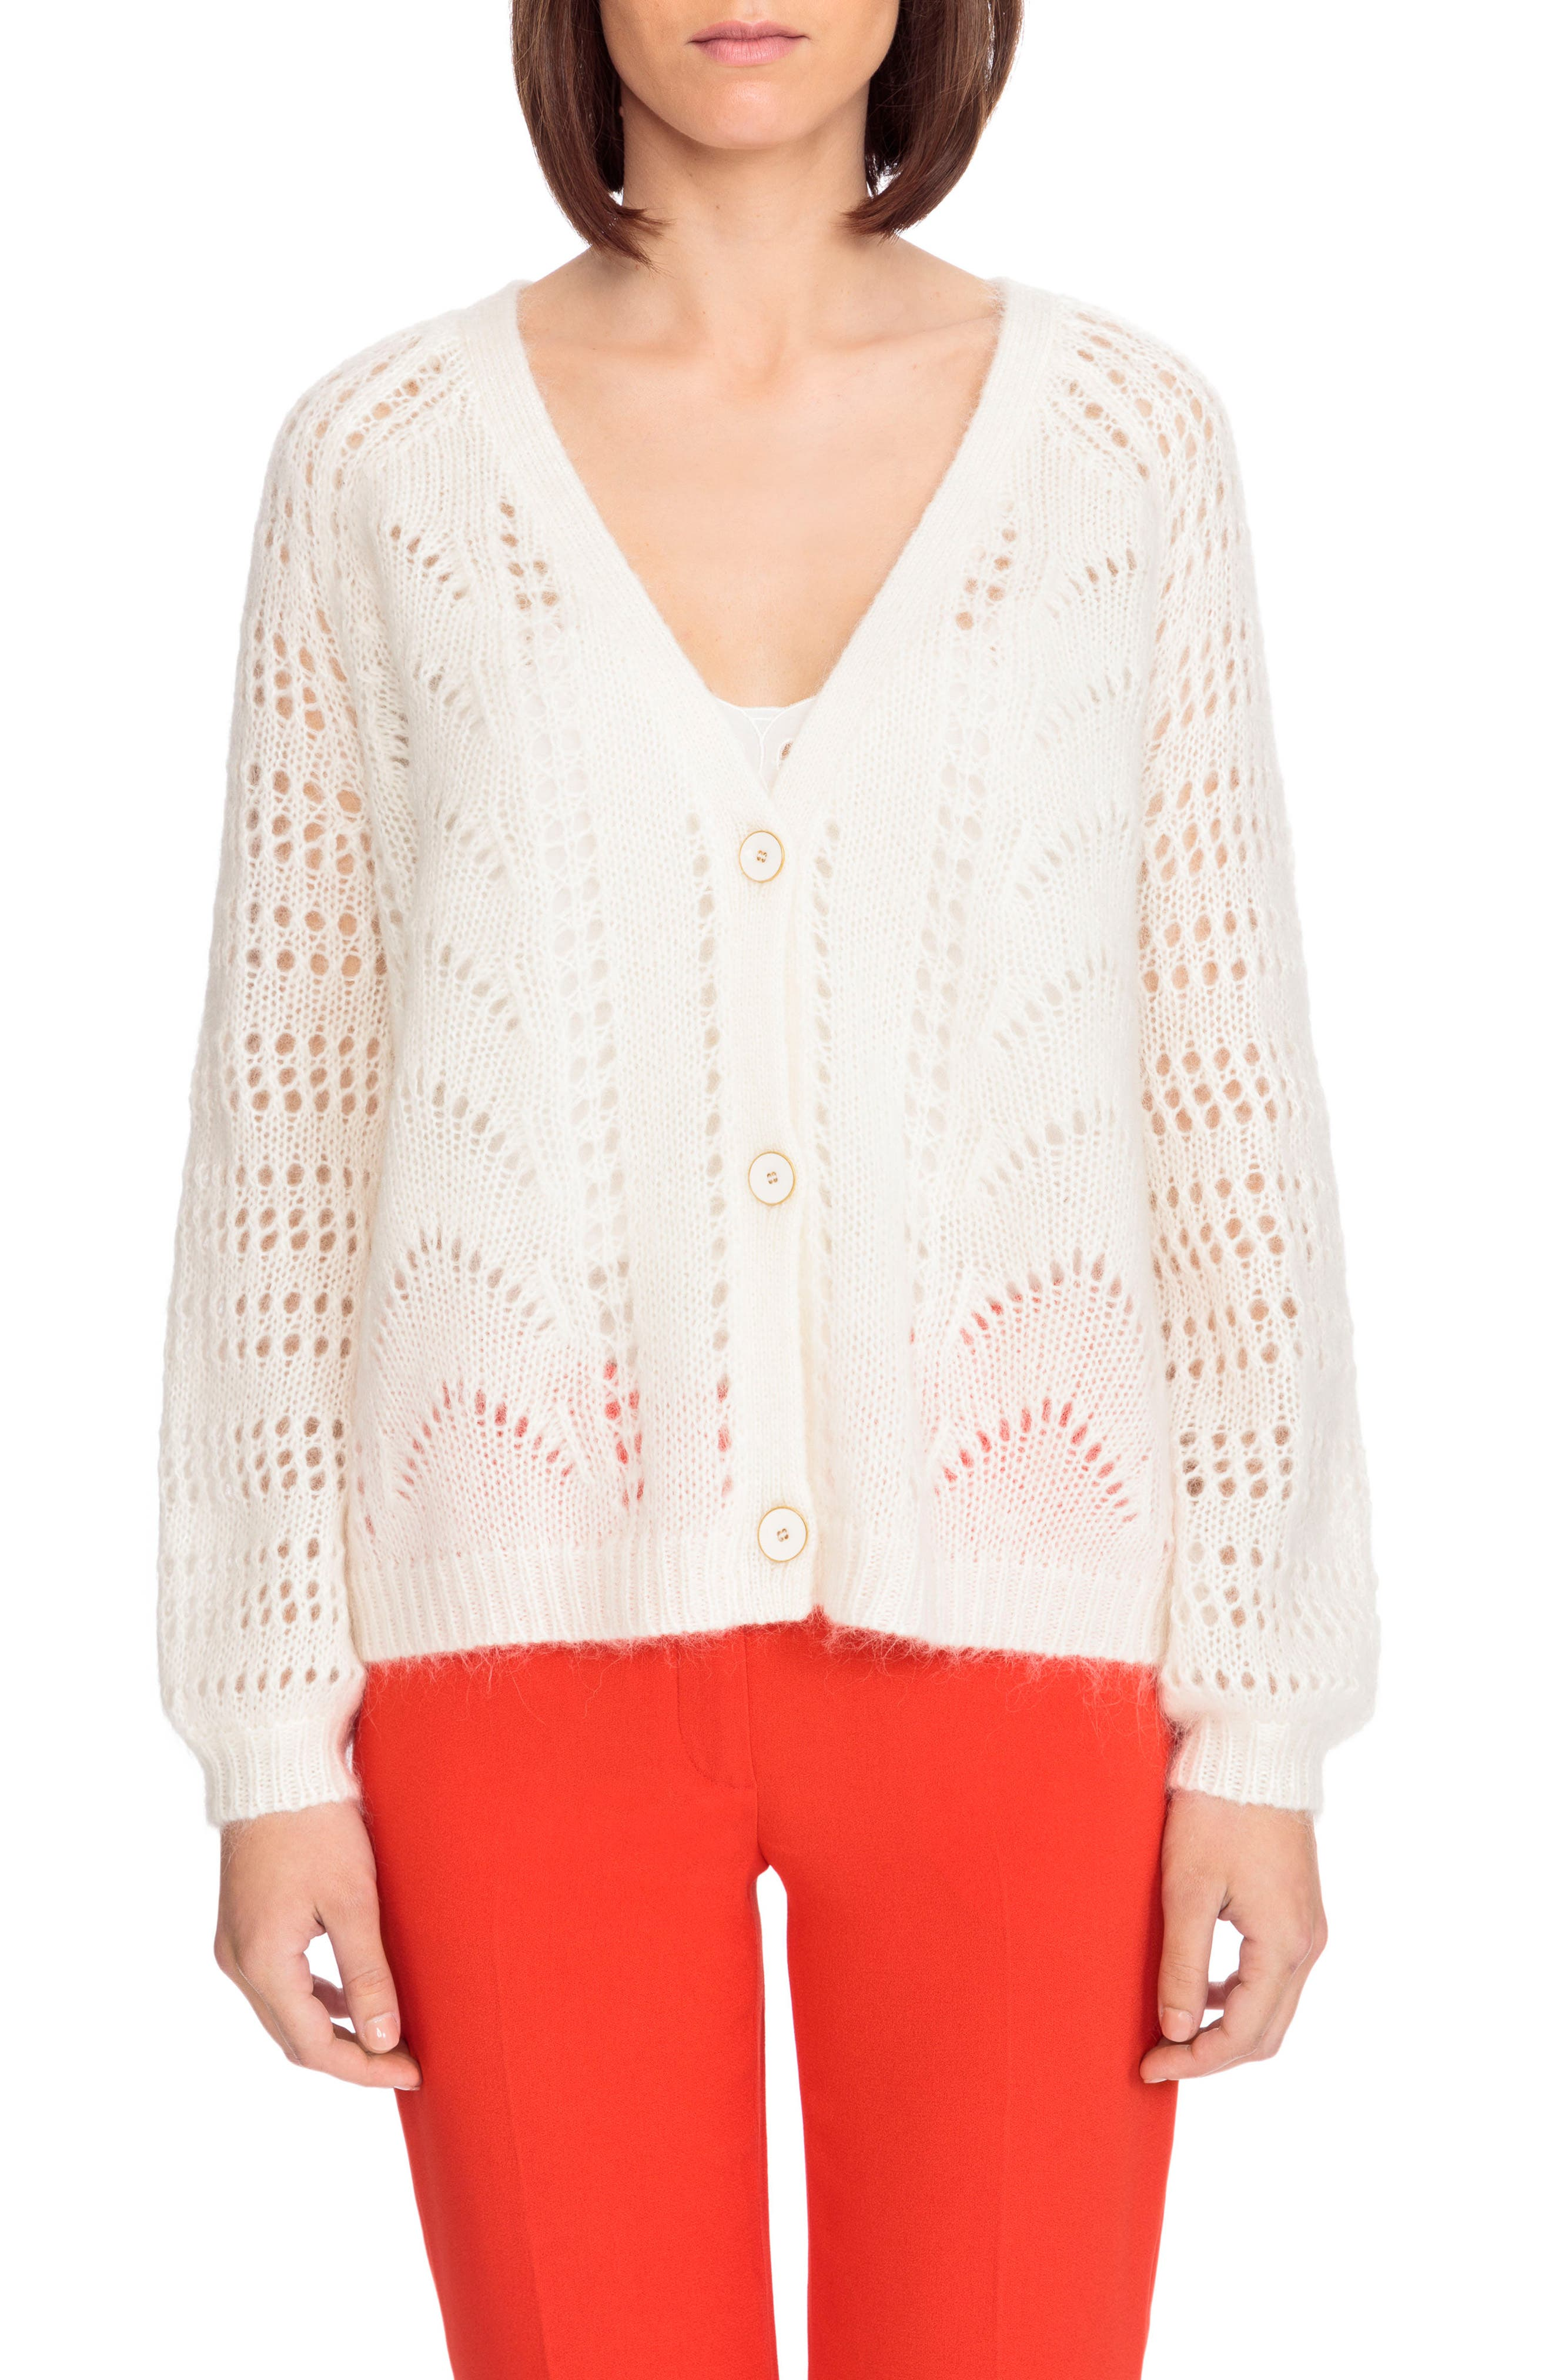 Dereck Cardigan,                         Main,                         color, Off White